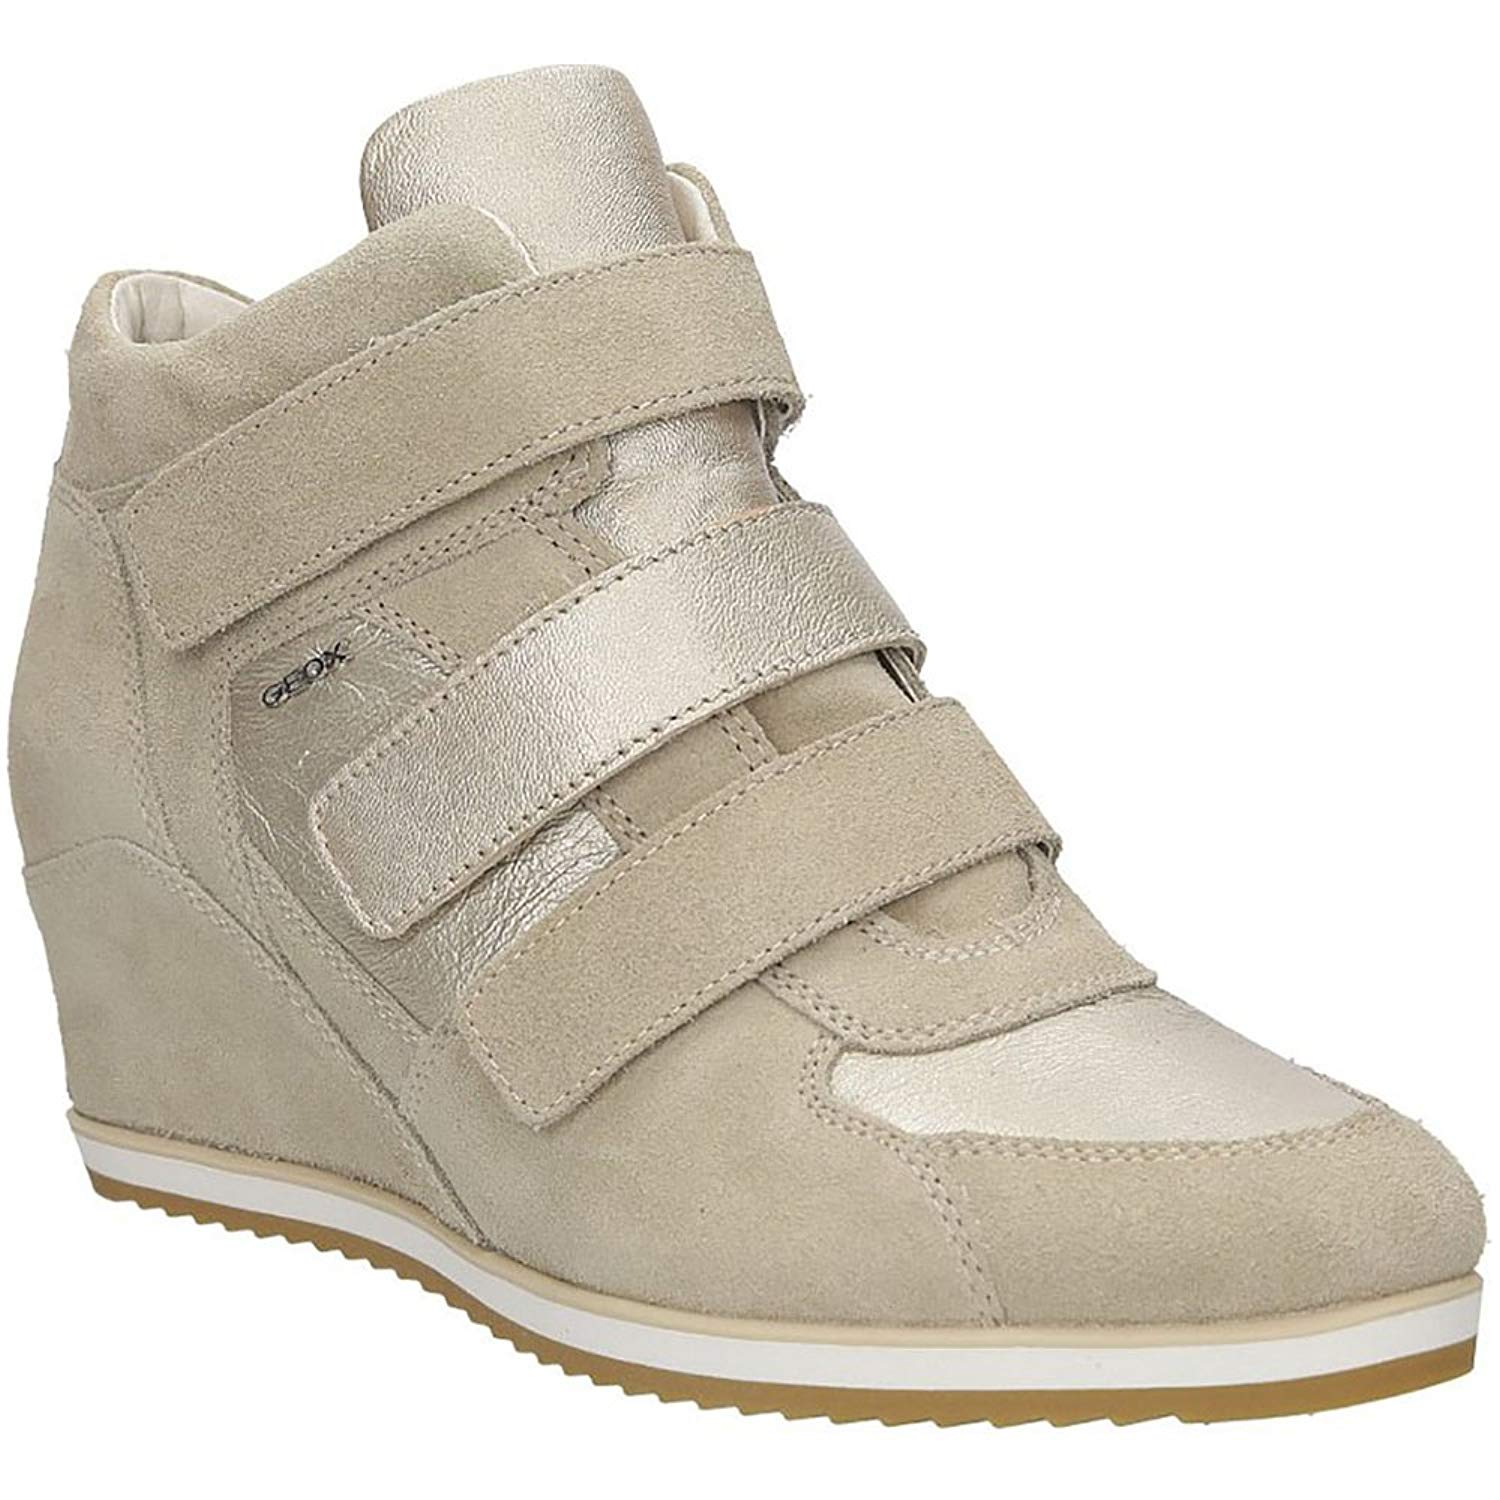 Cheap Geox Boots Womens, find Geox Boots Womens deals on